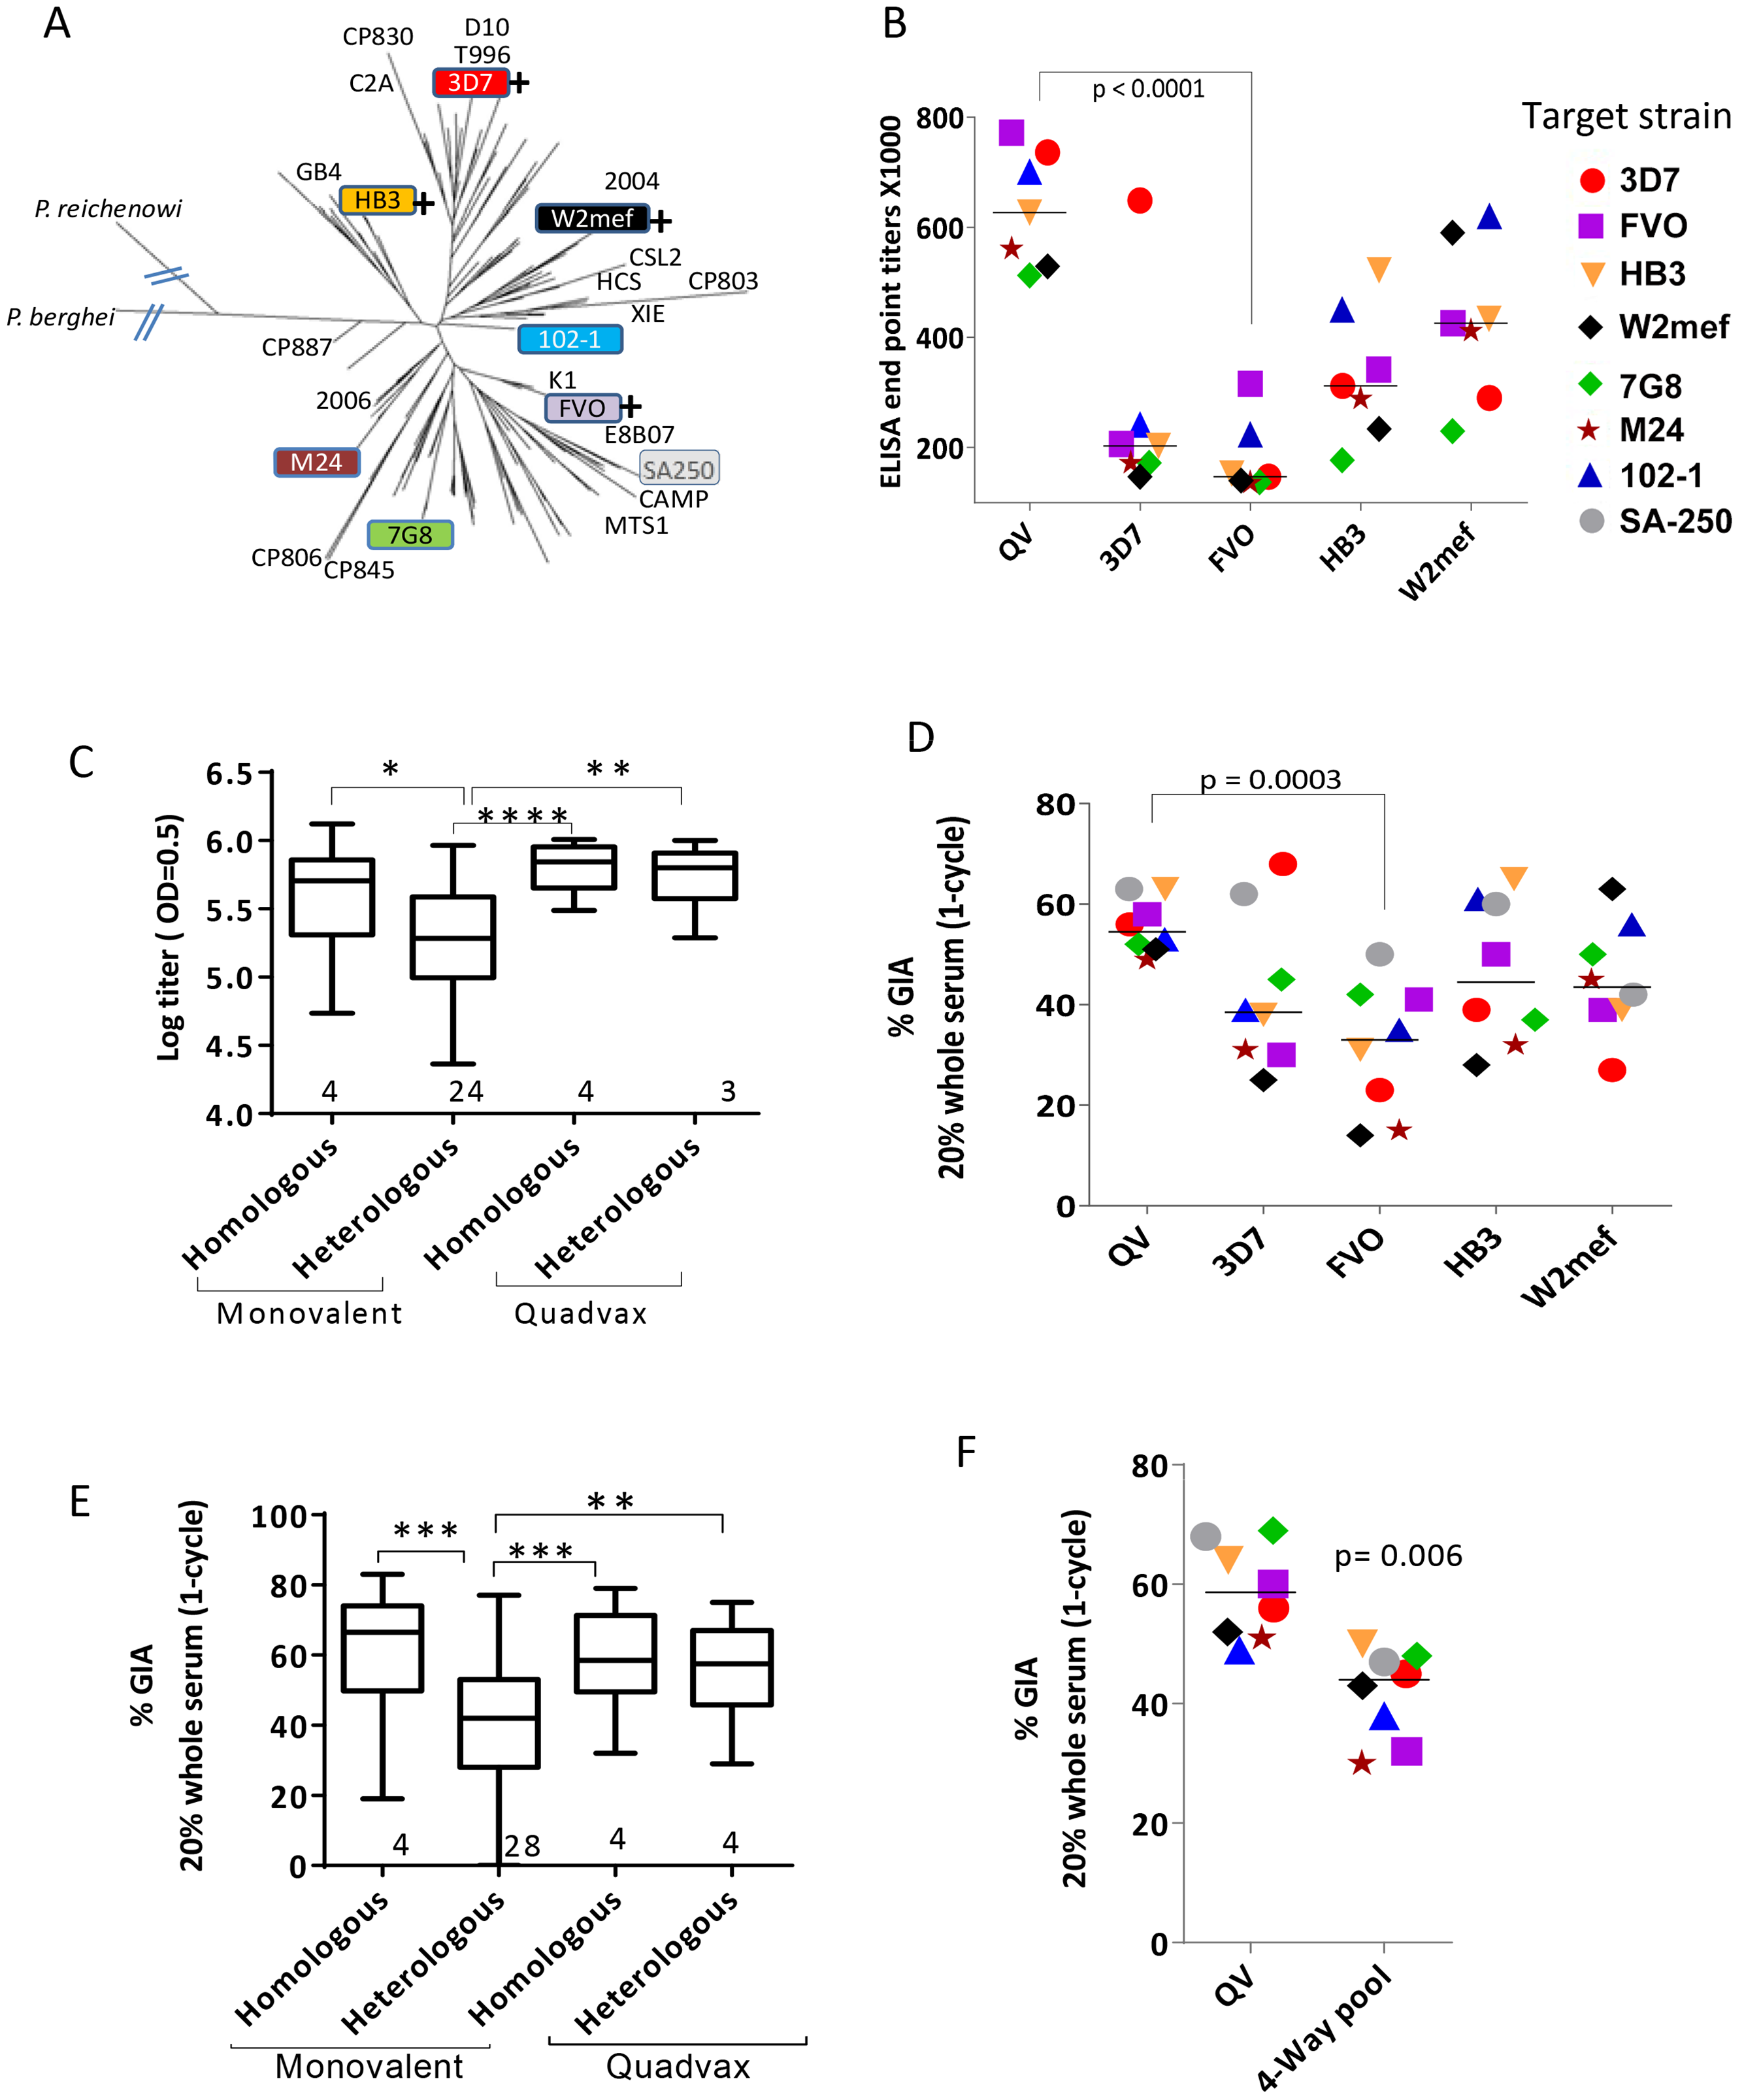 AMA1 sequence diversity and allelic coverage of four monovalent vaccines as compared to the QV.